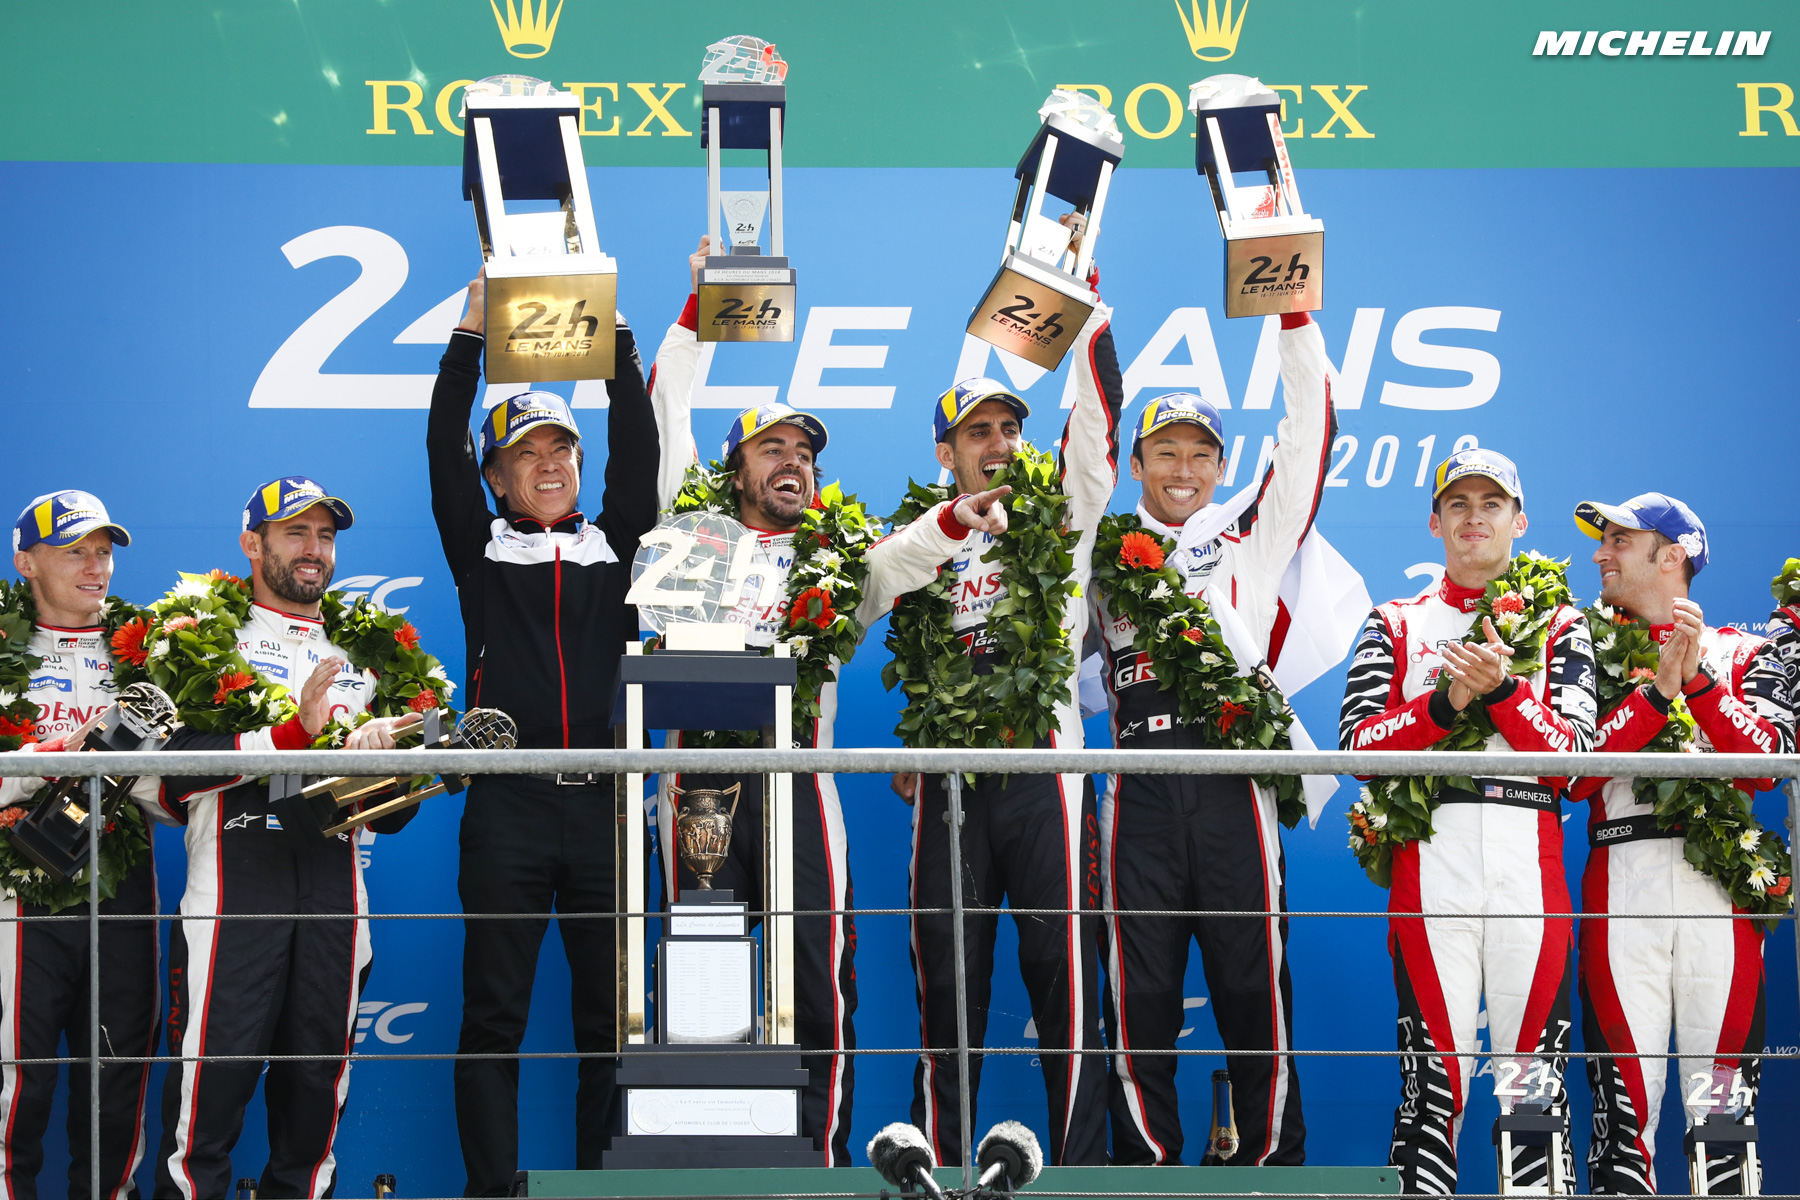 Toyota/Michelin tastes Le Mans glory at last!